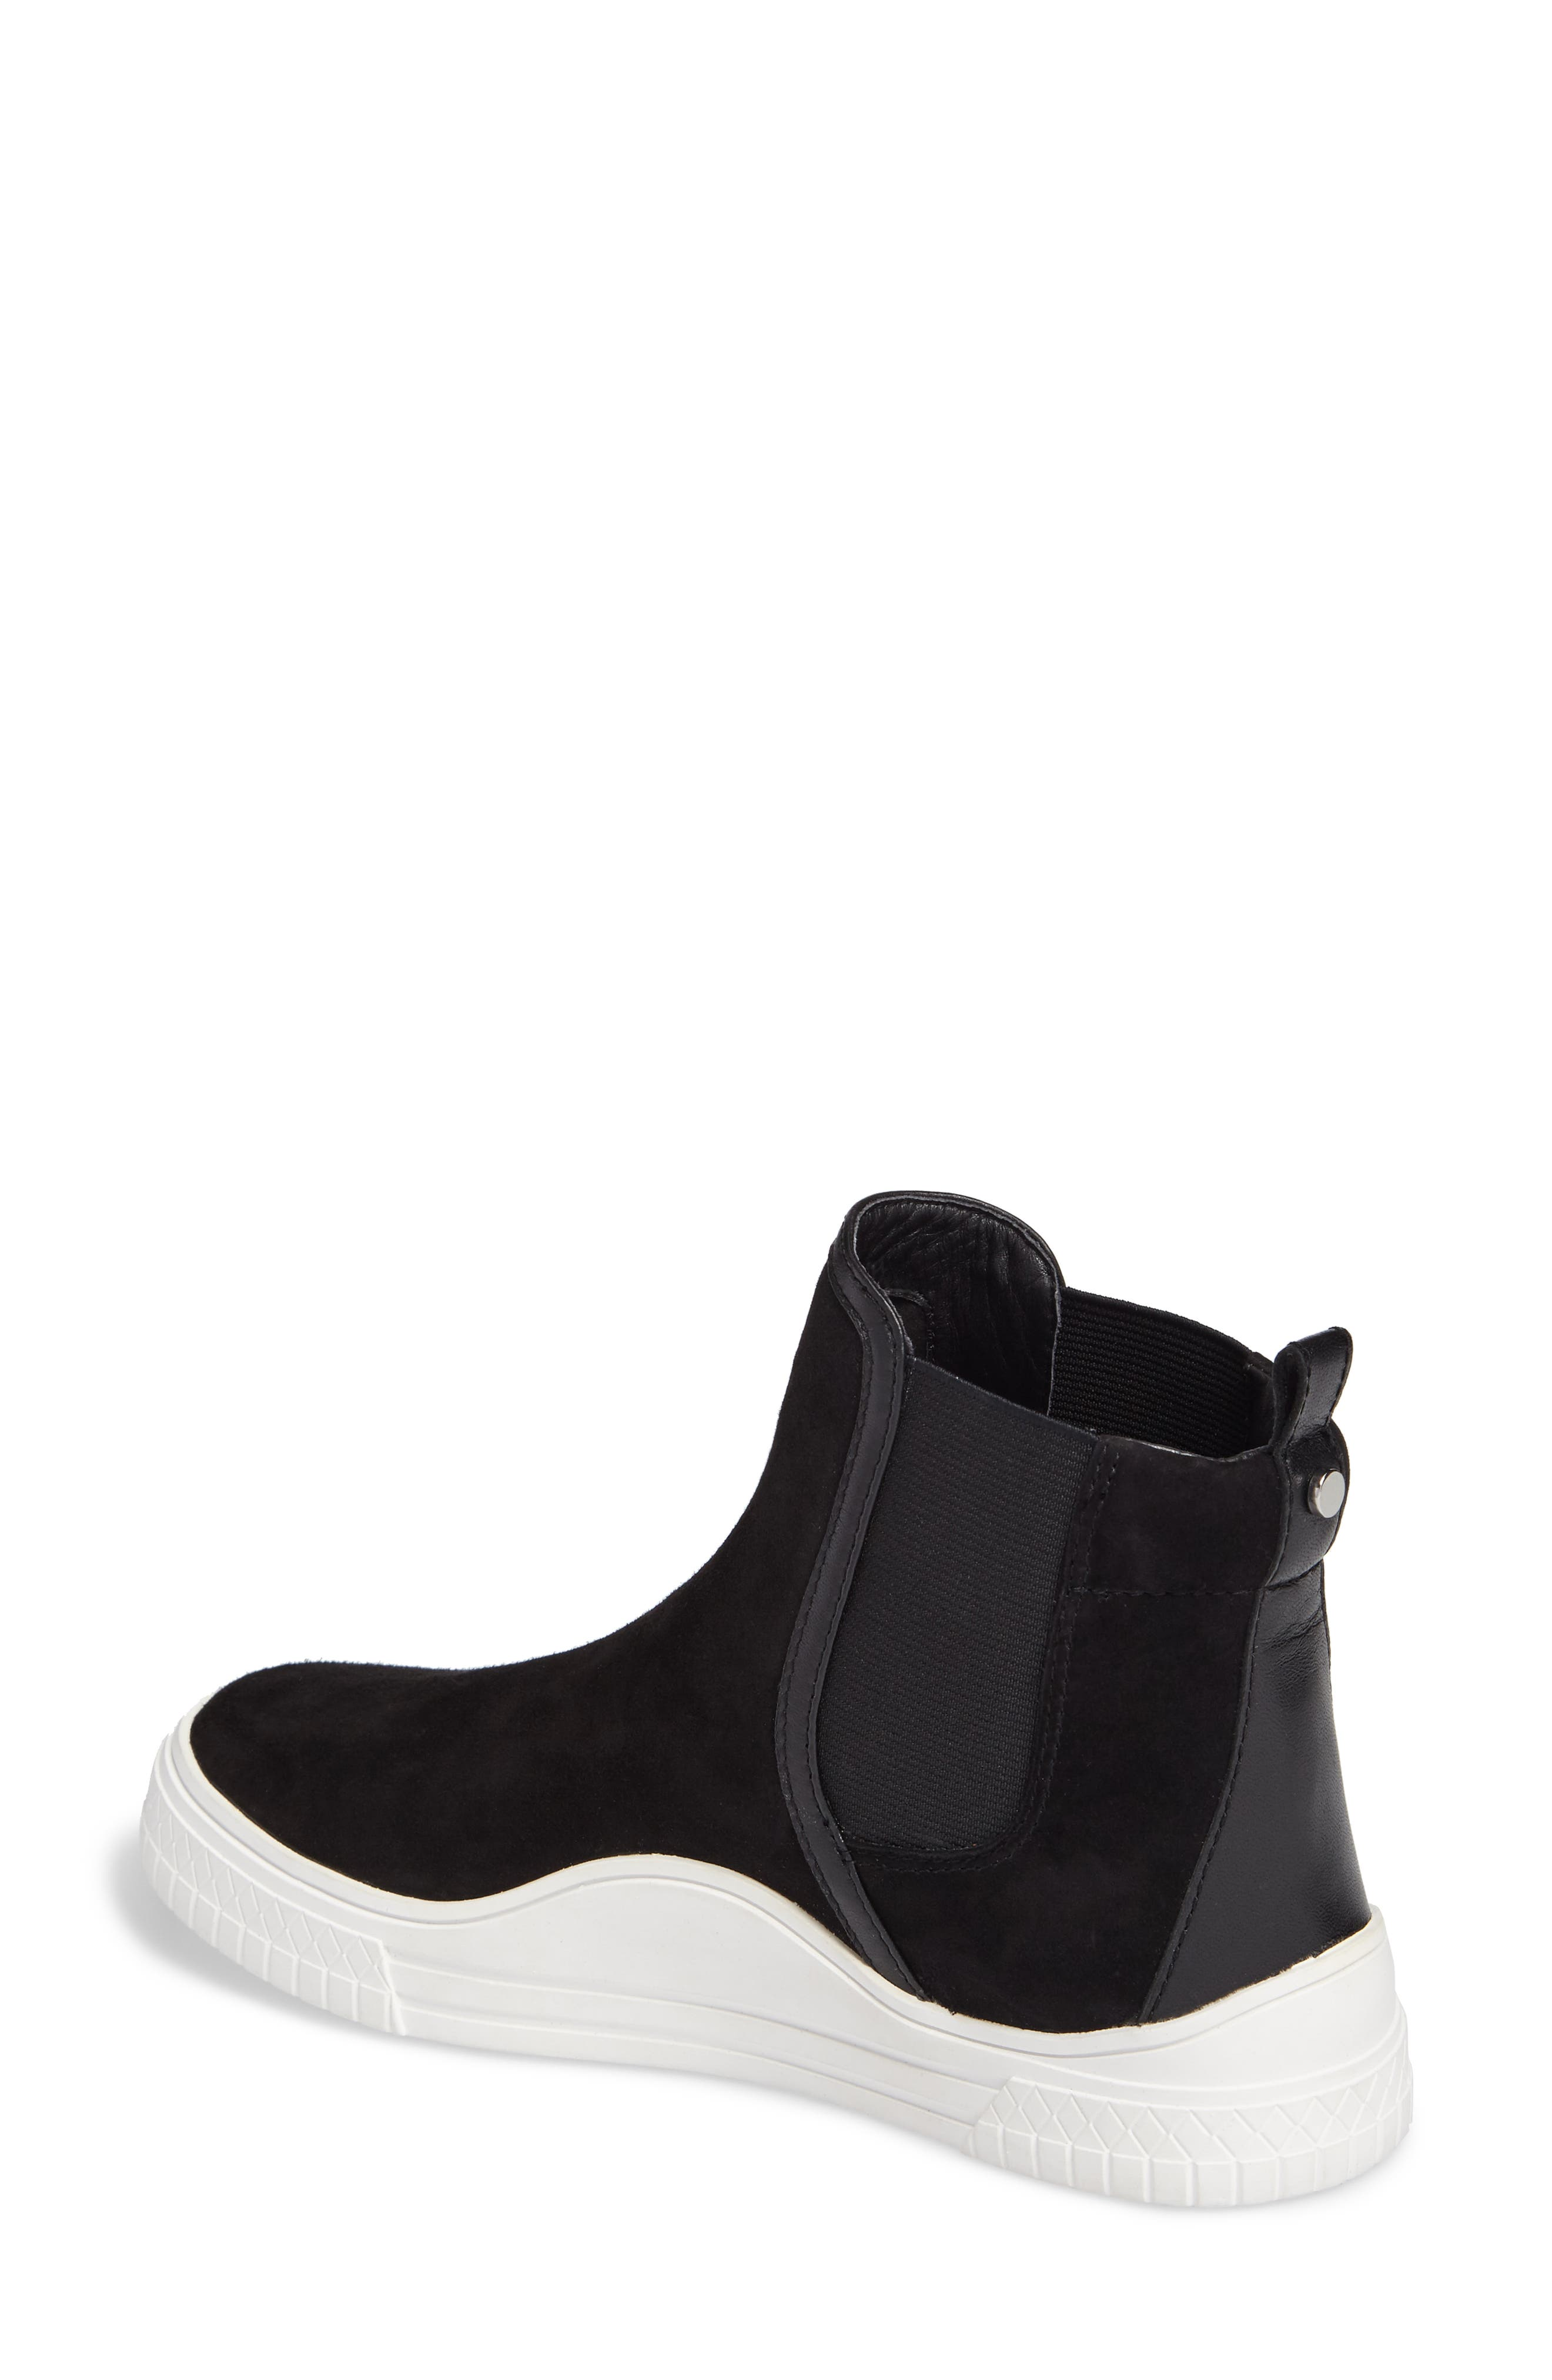 Gage Chelsea Boot,                             Alternate thumbnail 2, color,                             Black Suede